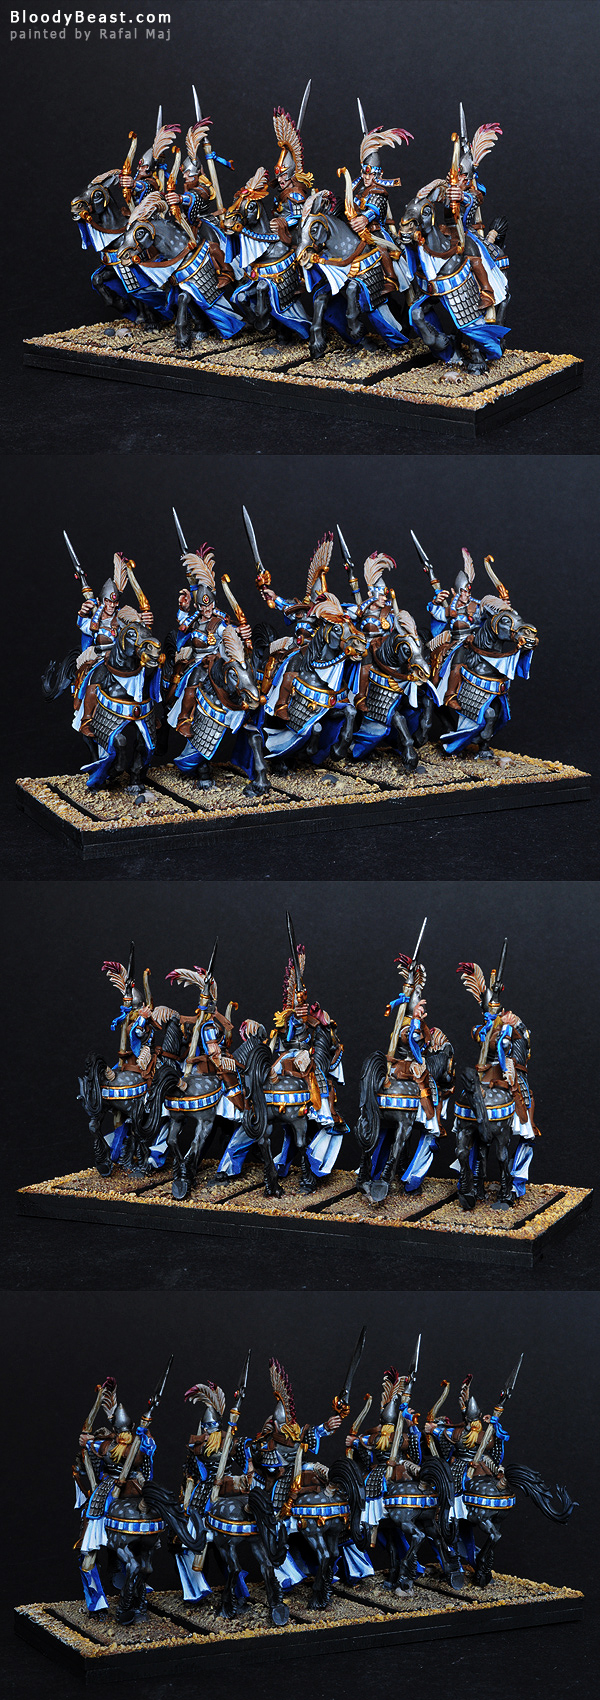 High Elf Ellyrian Reavers painted by Rafal Maj (BloodyBeast.com)